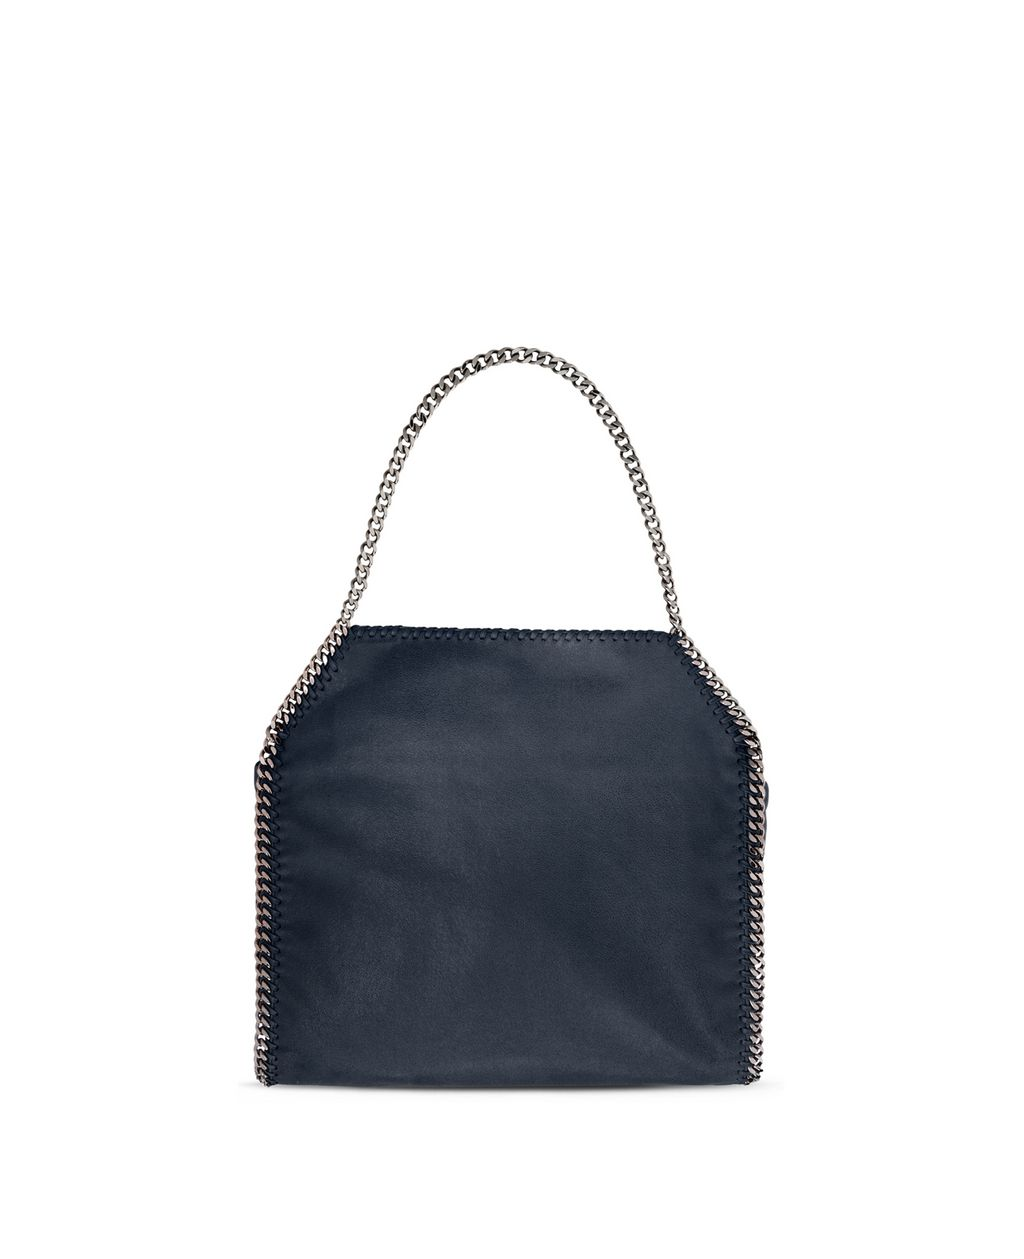 Navy Falabella Shaggy Deer Small Tote - STELLA MCCARTNEY